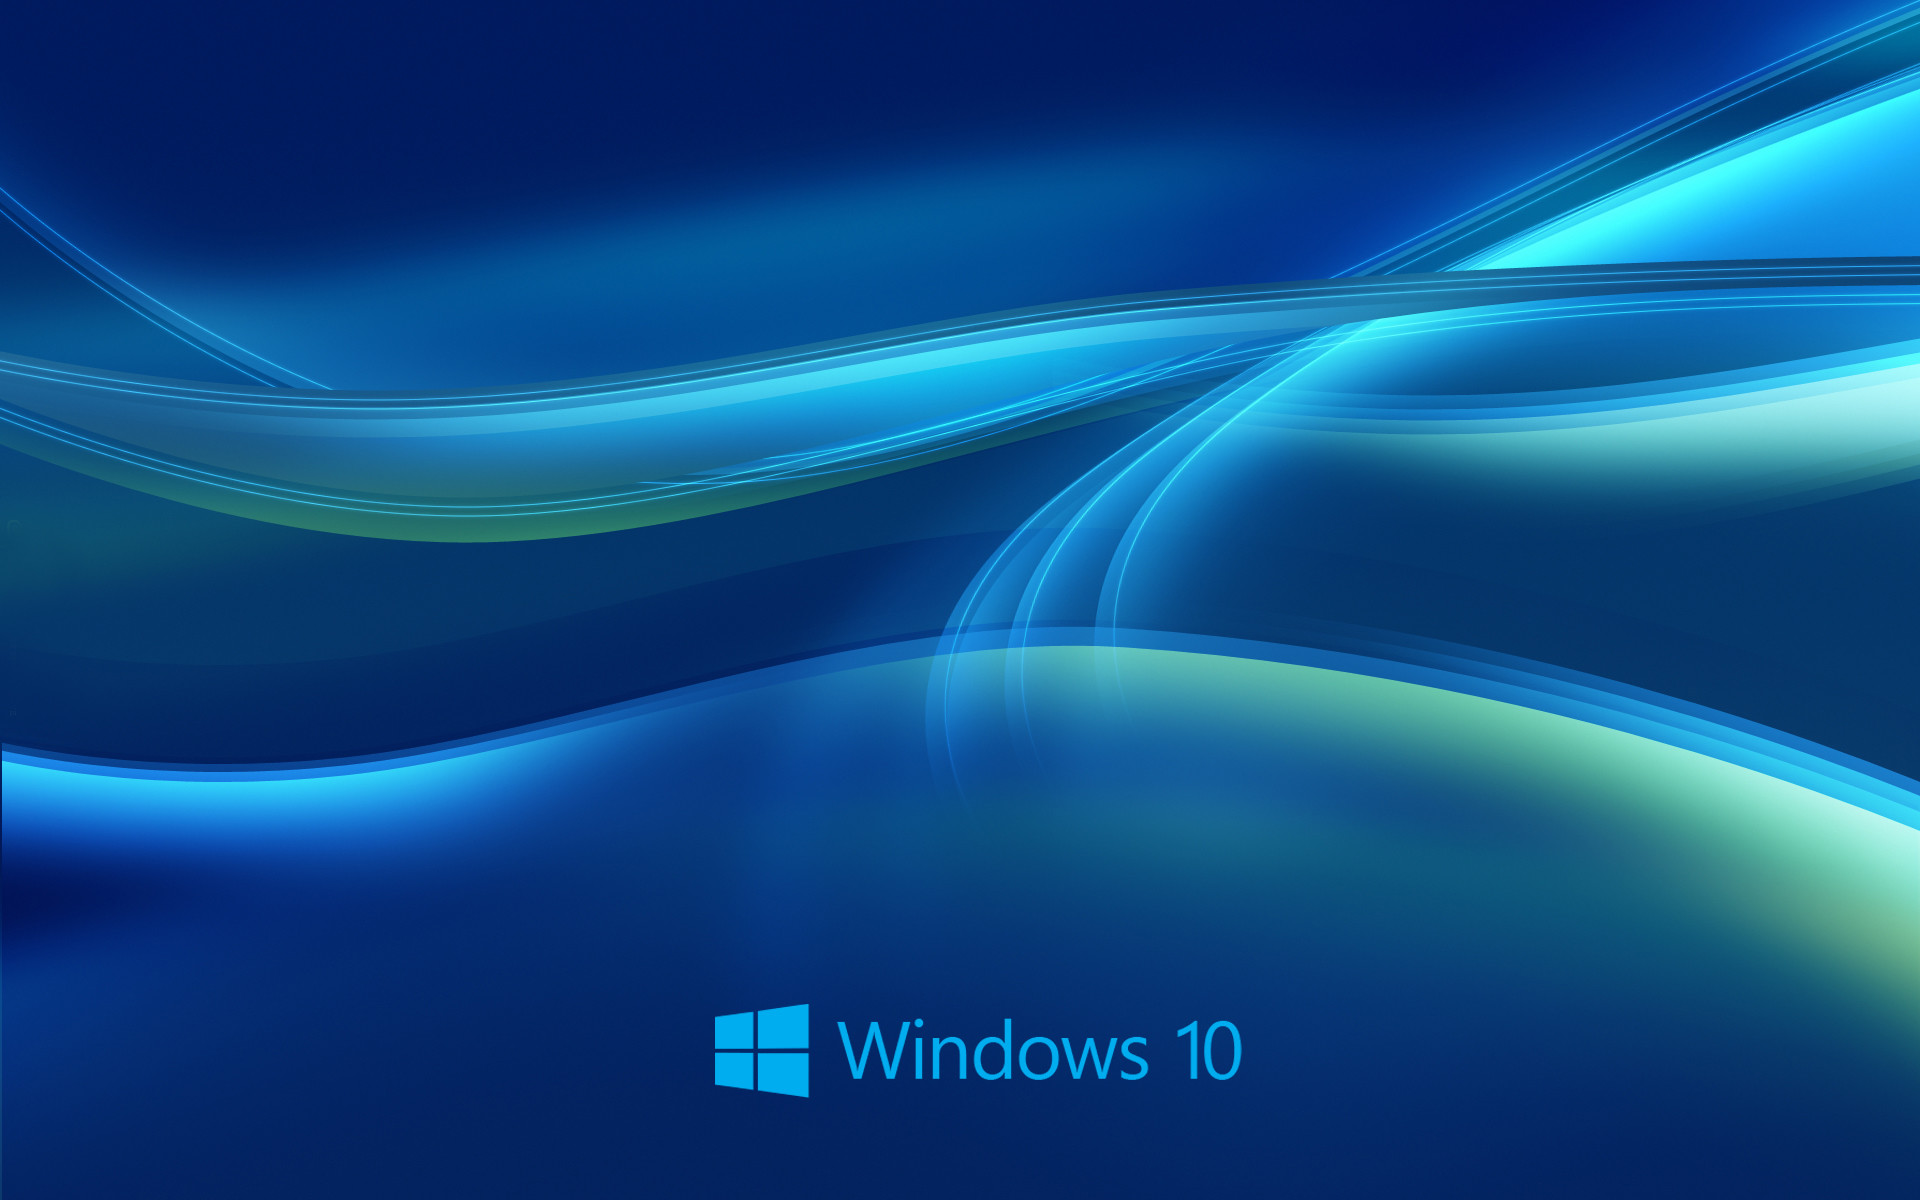 1920x1200 Windows 10 Wallpapers 10